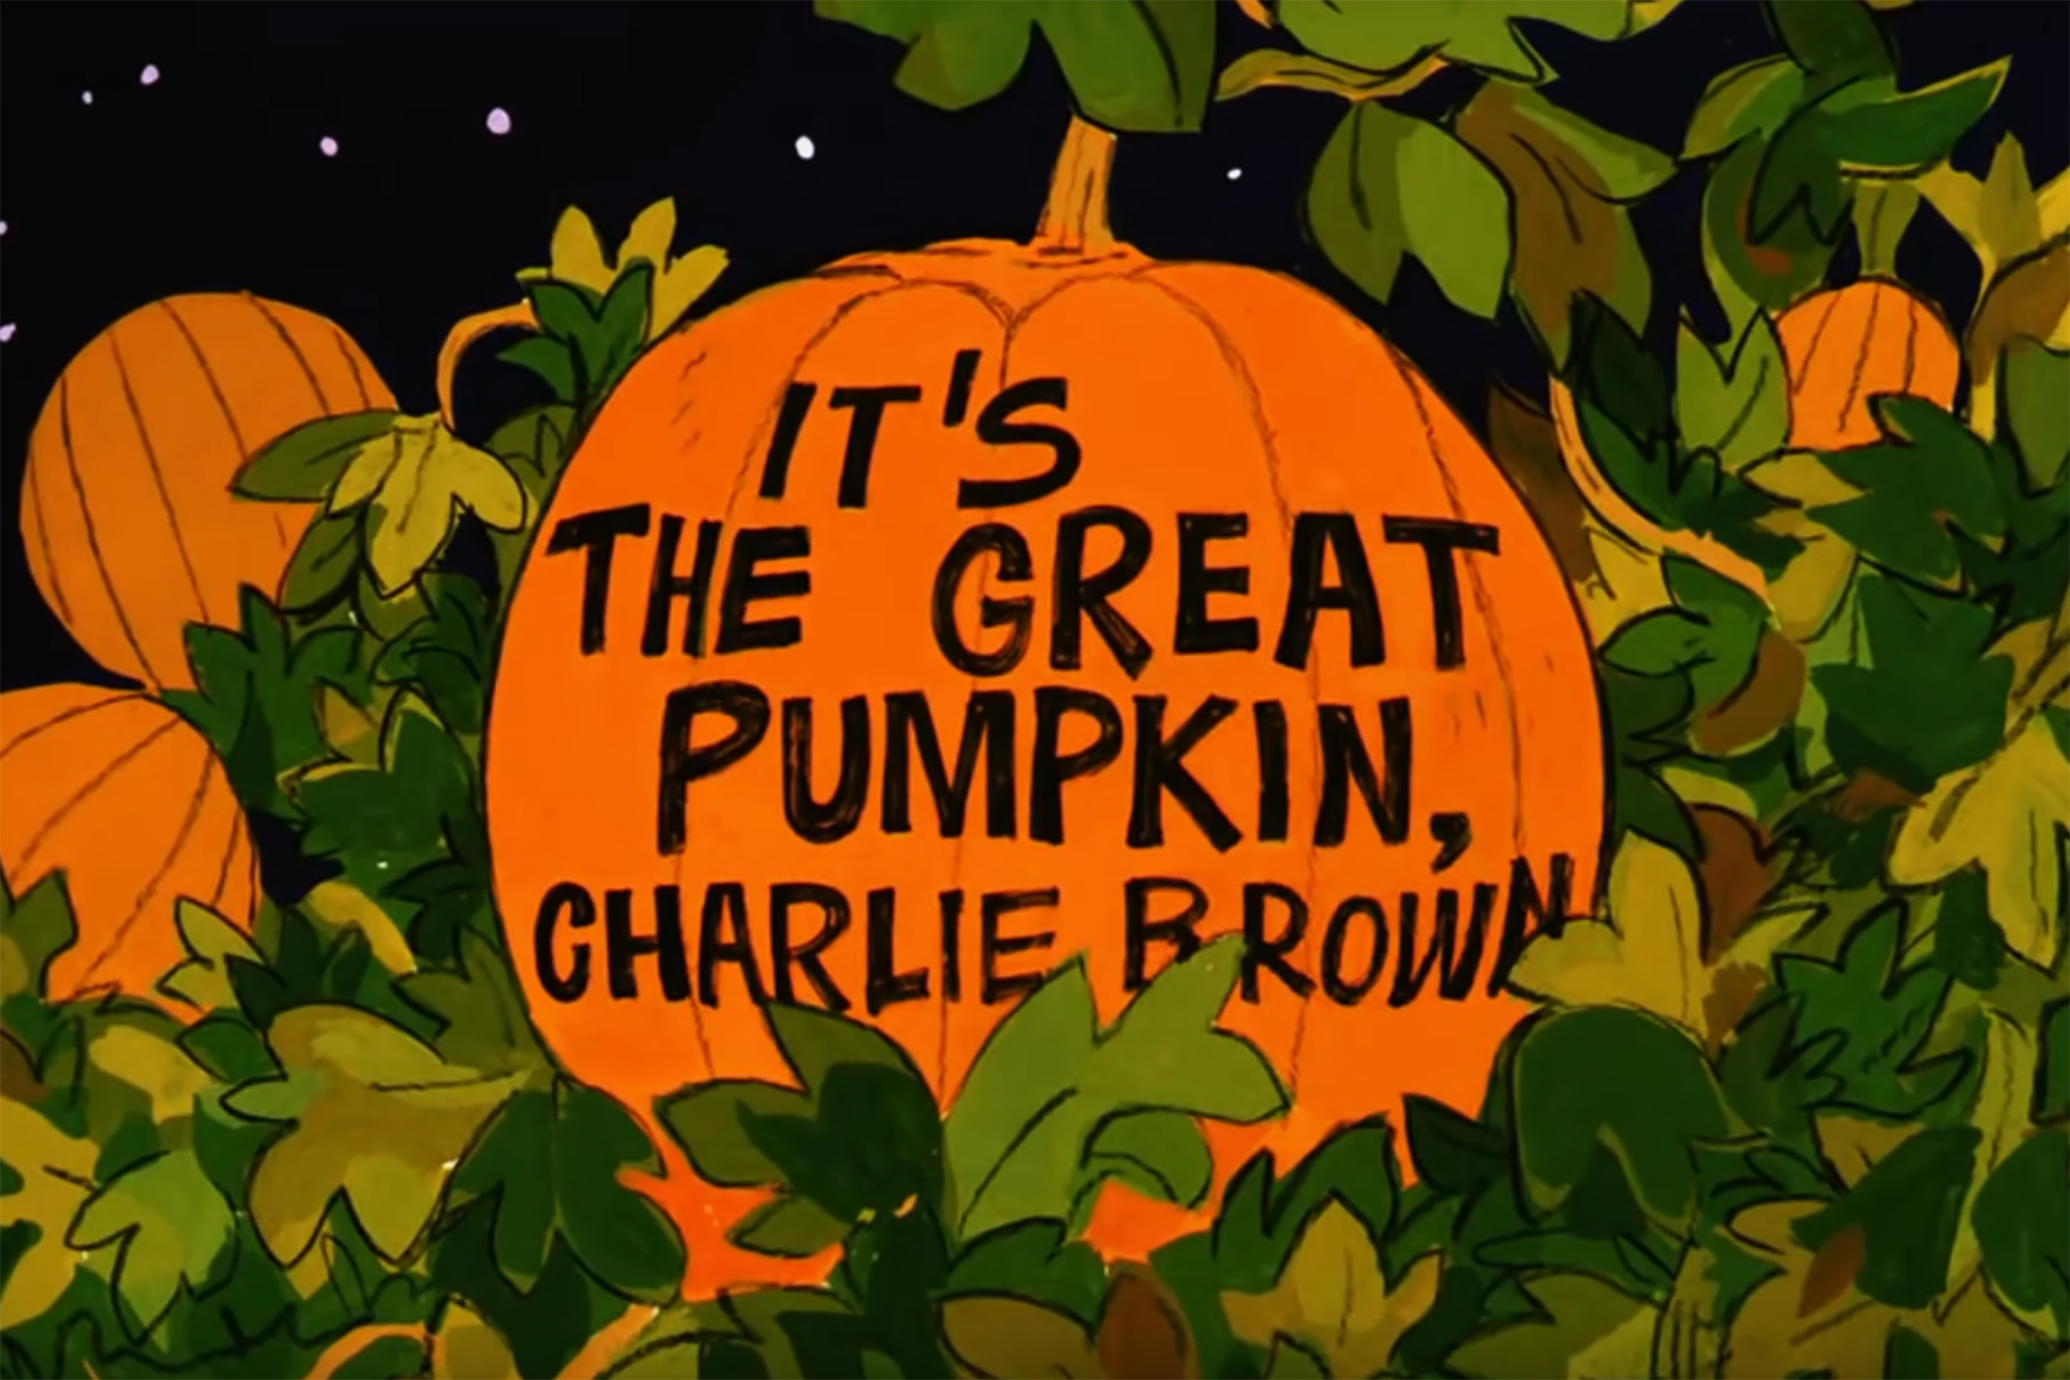 2070x1380 Charlie Brown Halloween Facebook Cover 47041 | ZWARE. Charlie Brown  Halloween Facebook Cover 47041 ZWARE